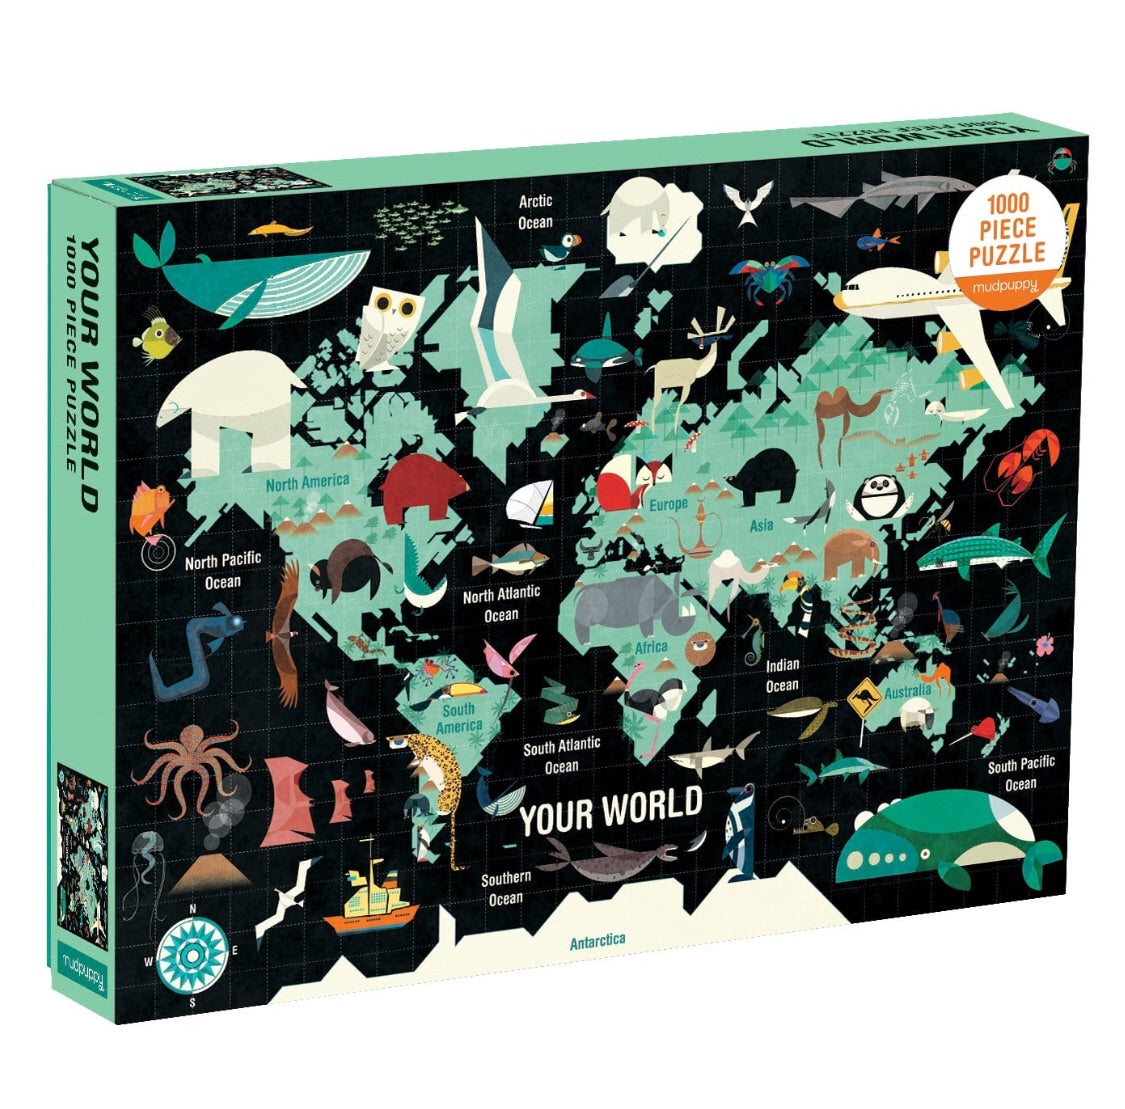 1000 Piece Your World Puzzle